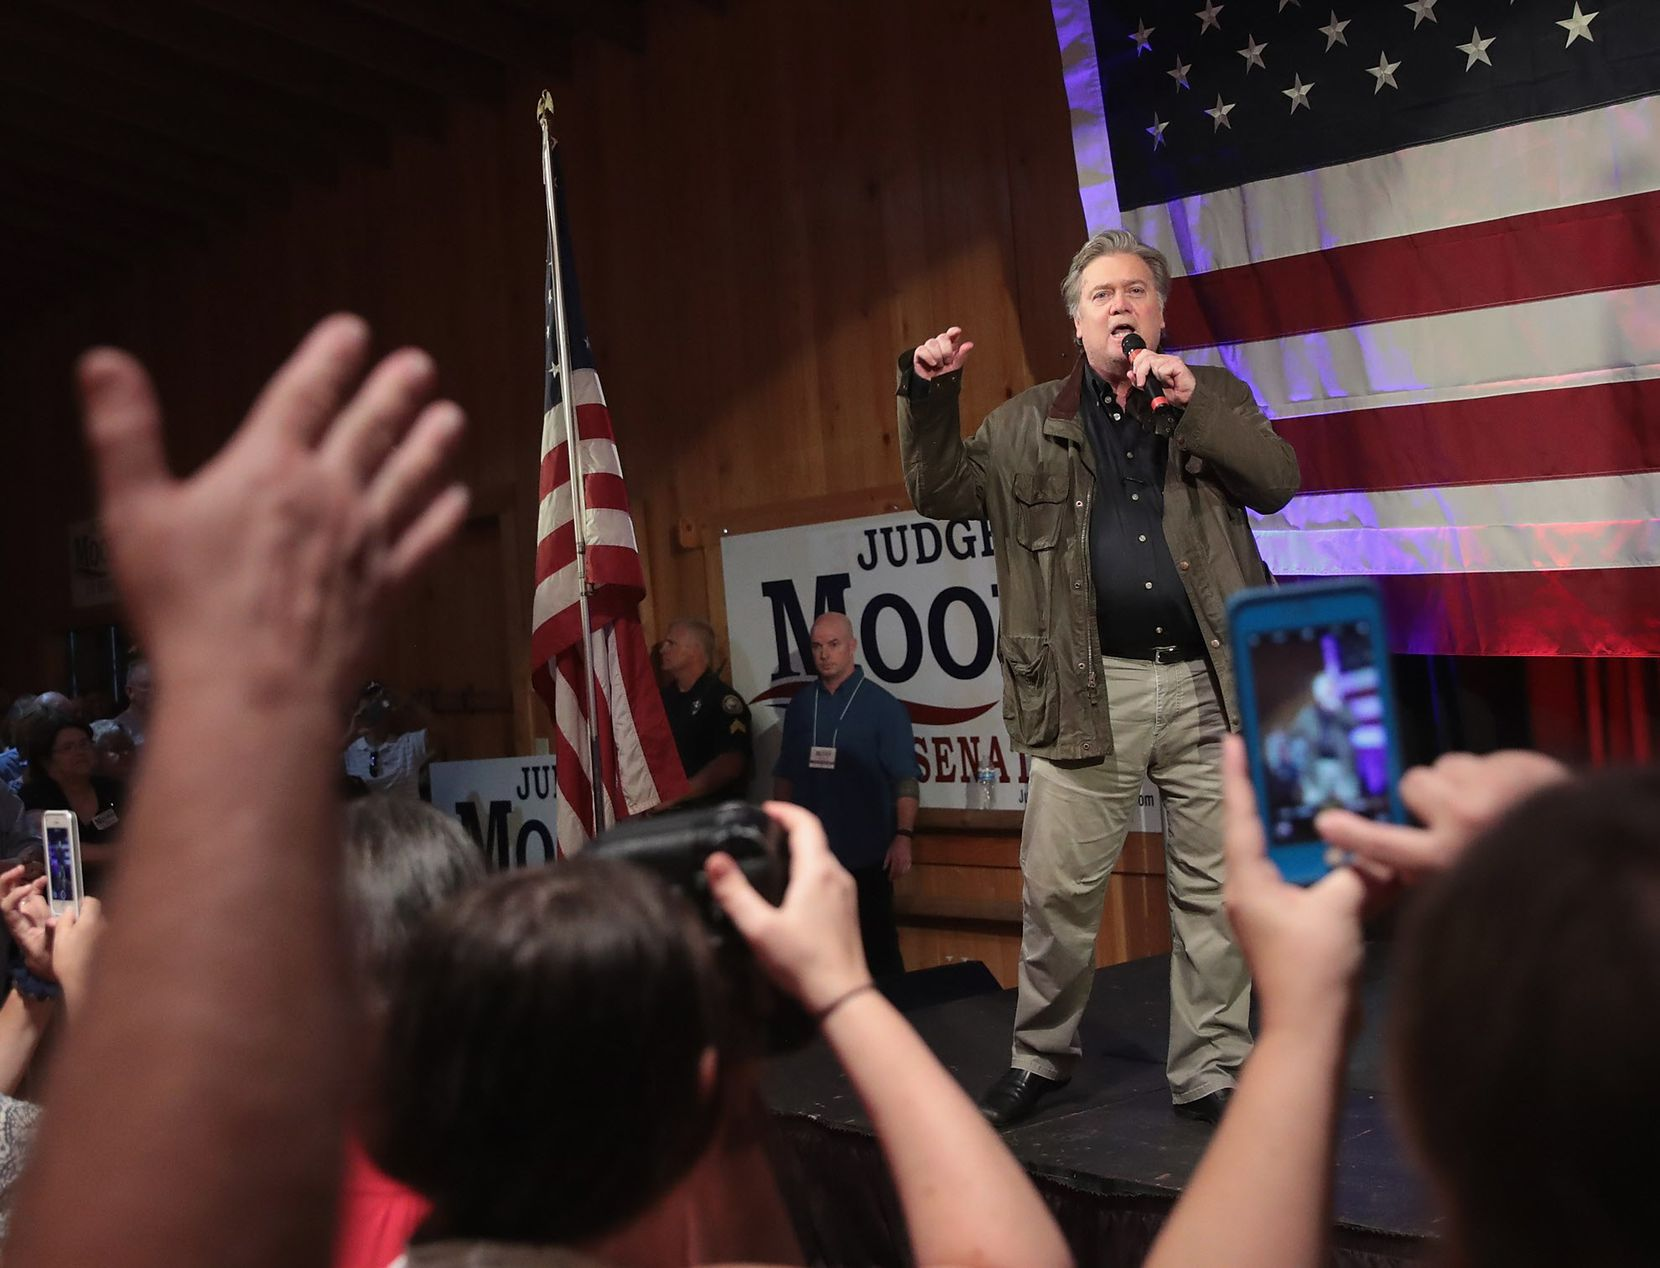 FAIRHOPE, AL - SEPTEMBER 25:  Former advisor to President Donald Trump and  executive chairman of Breitbart News, Steve Bannon, speaks at a campaign event for Republican candidate for the U.S. Senate in Alabama Roy Moore on September 25, 2017 in Fairhope, Alabama.